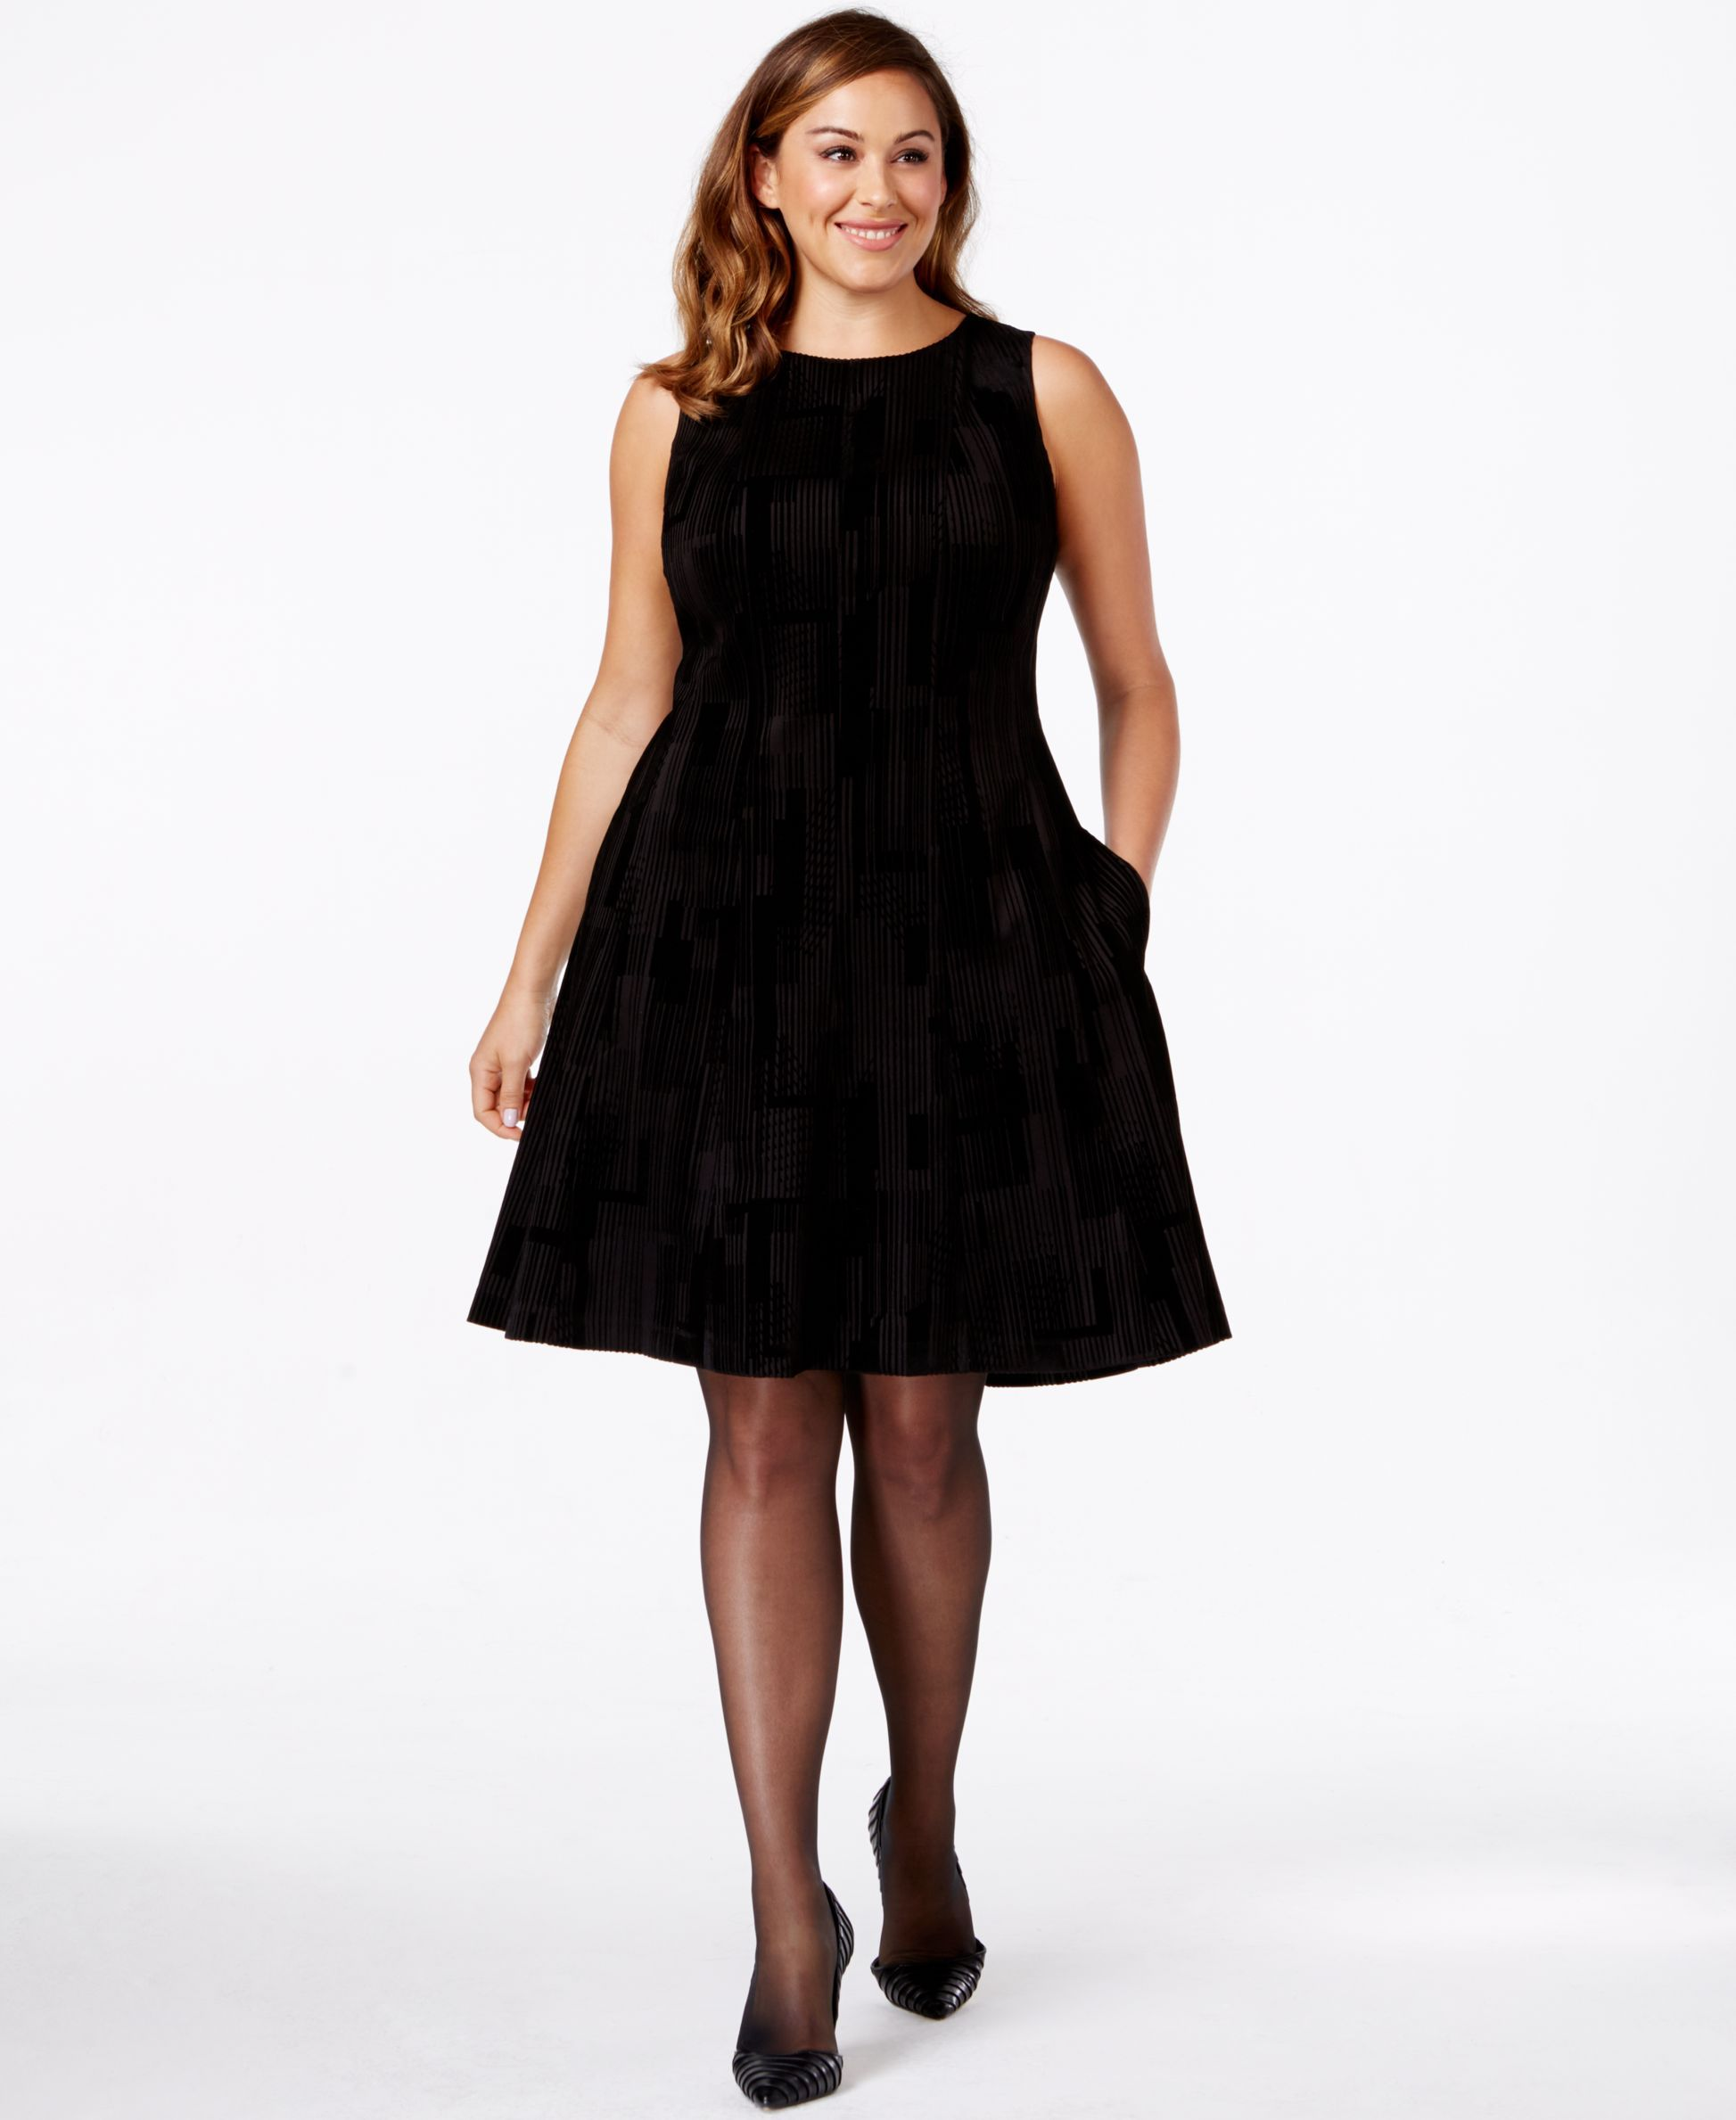 53ace317a95 Calvin Klein Plus Size Burnout-Fabric Sleeveless Fit-and-Flare Dress ...